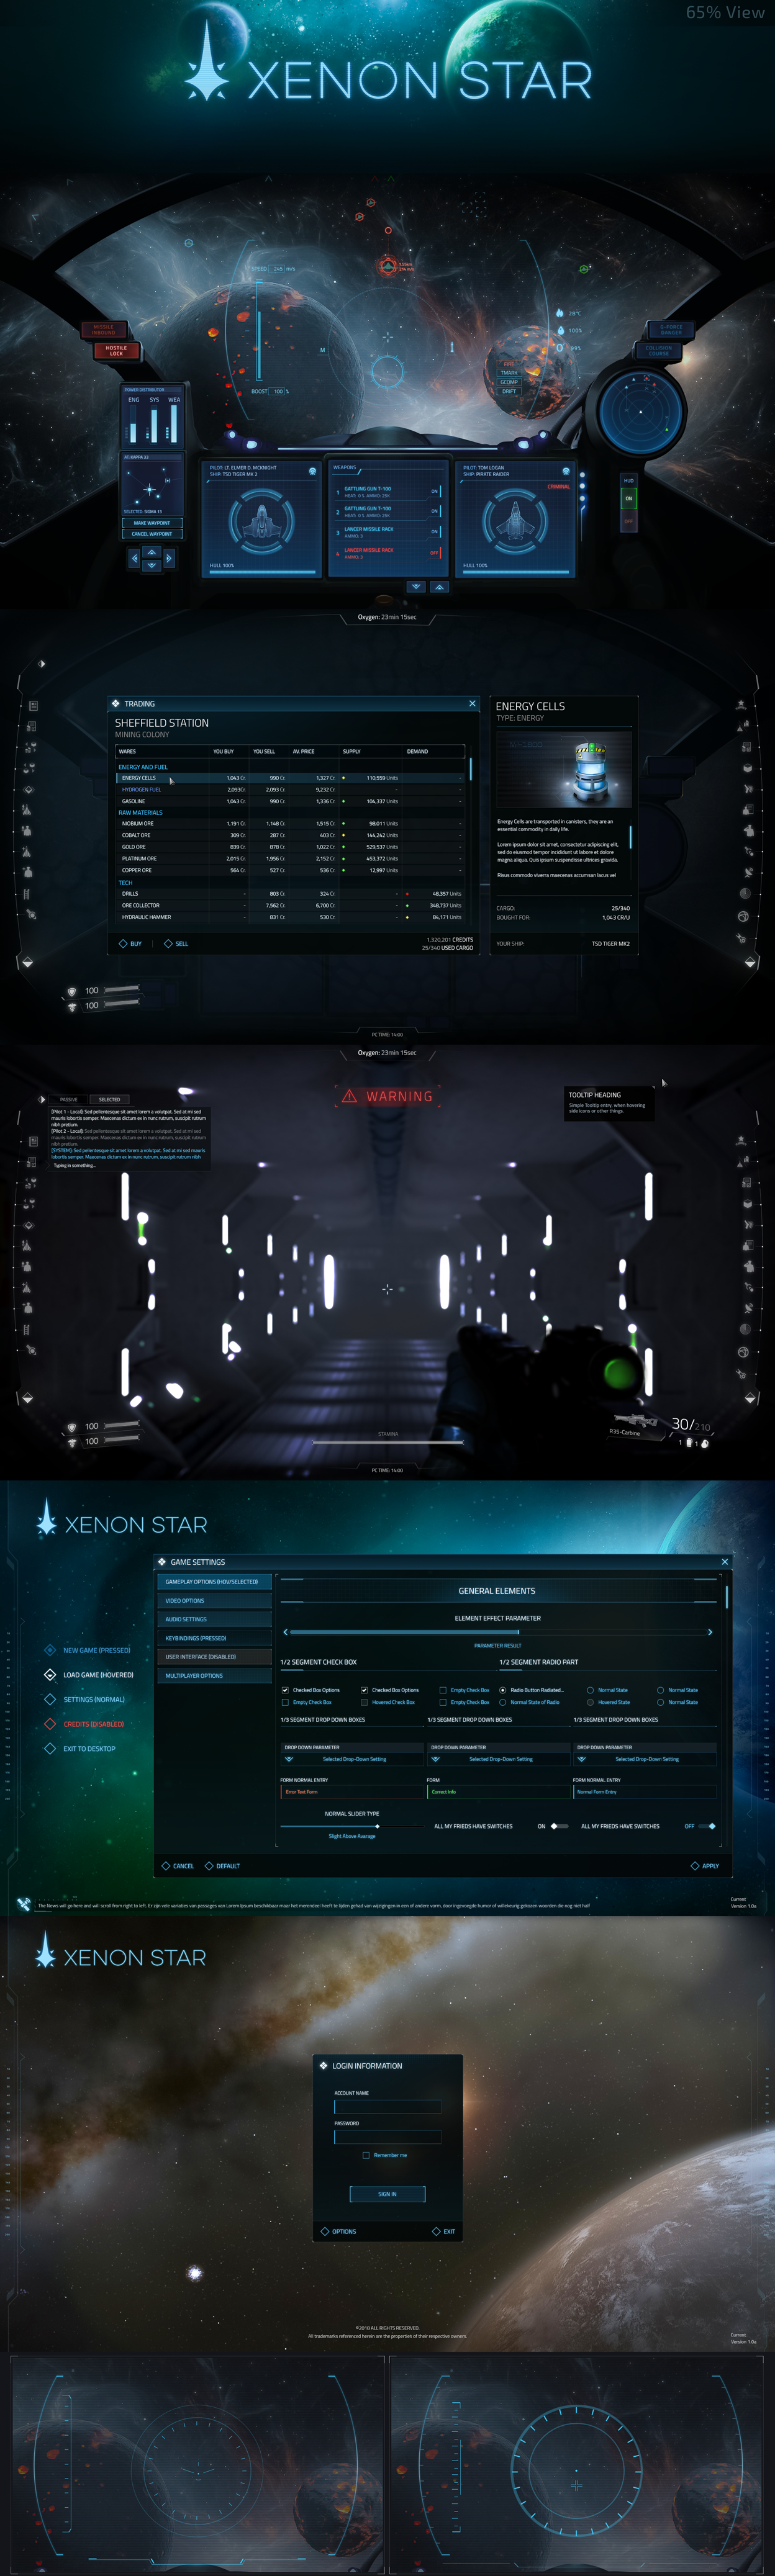 Xenon Star - Space Sim GUI, for Unity Asset Store  | My GUIs